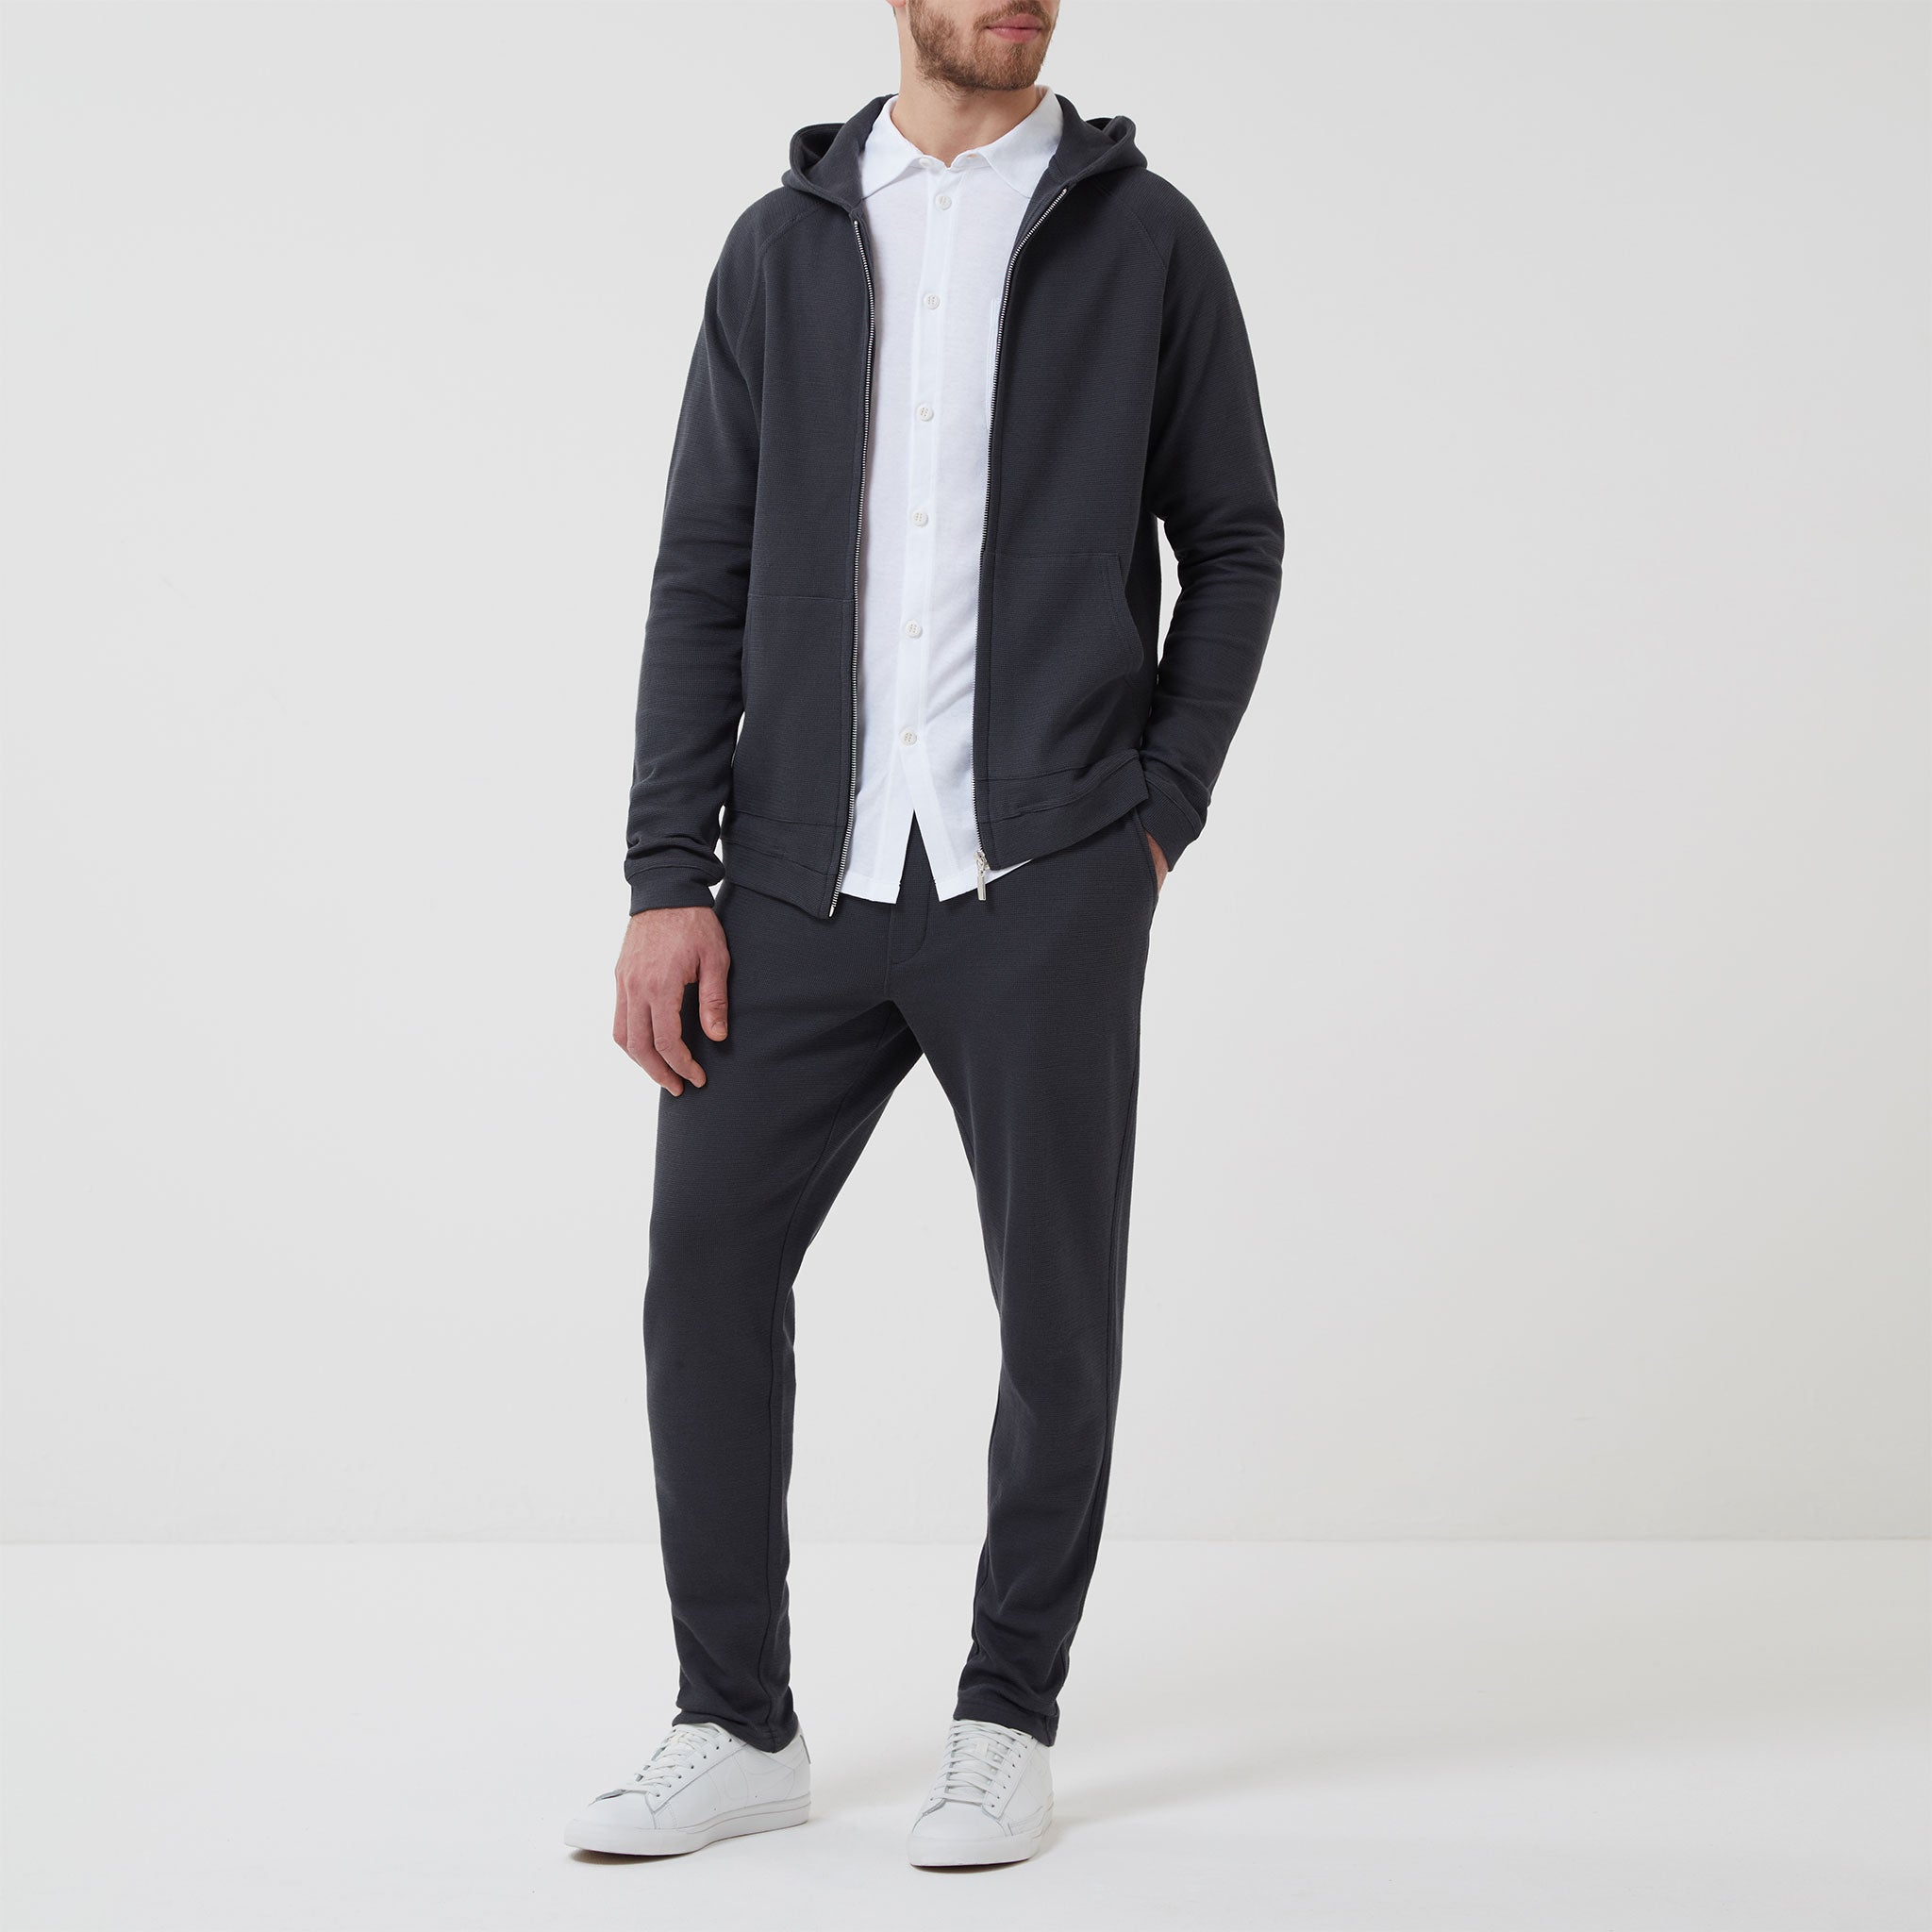 Hamilton and Hare Waffle Hooded Travel Jacket Charcoal